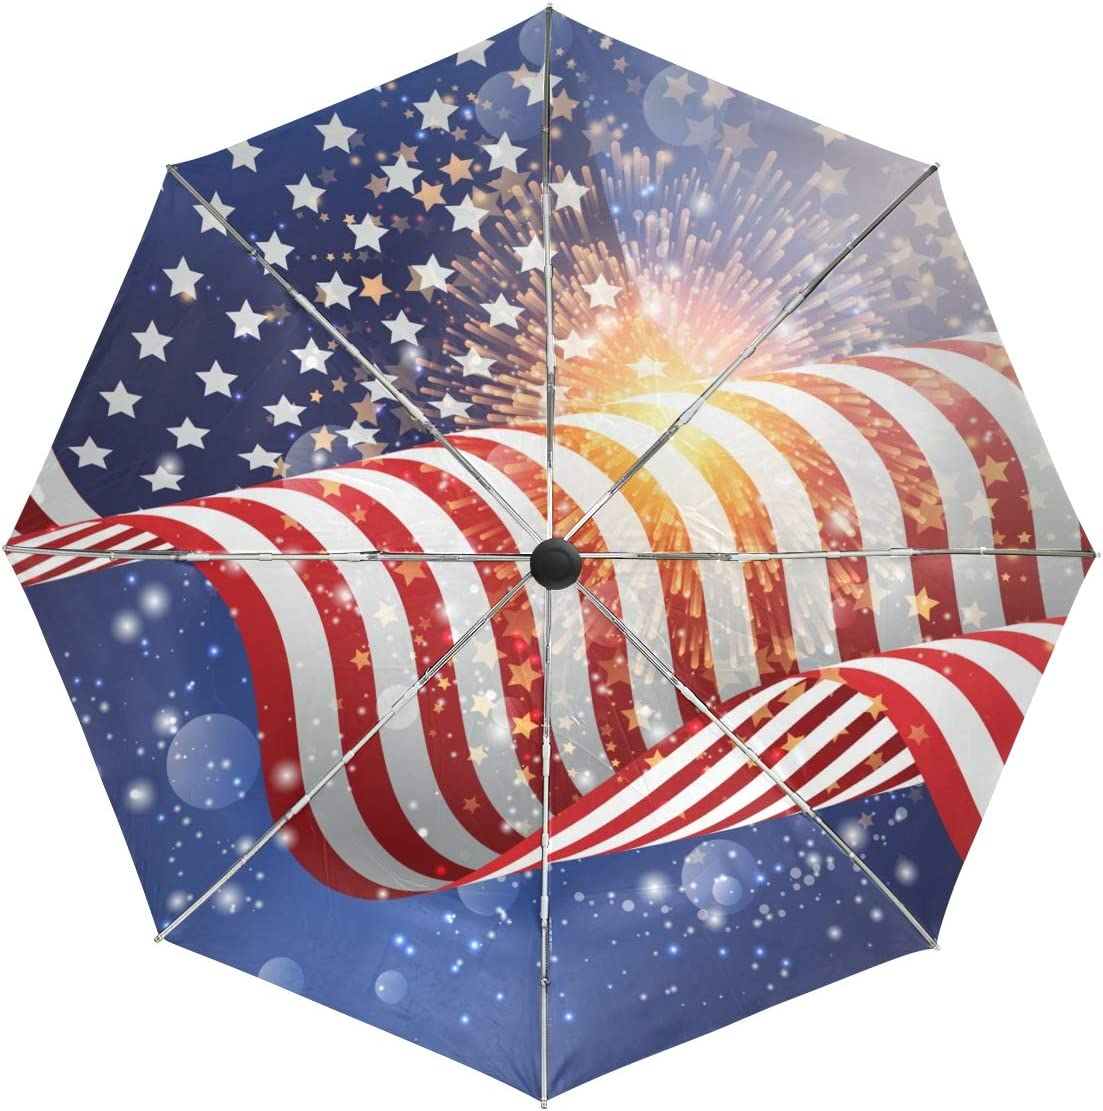 Umbrella Auto Open Max 88% OFF Close Selling Art 3 Abstract Fireworks Flag American